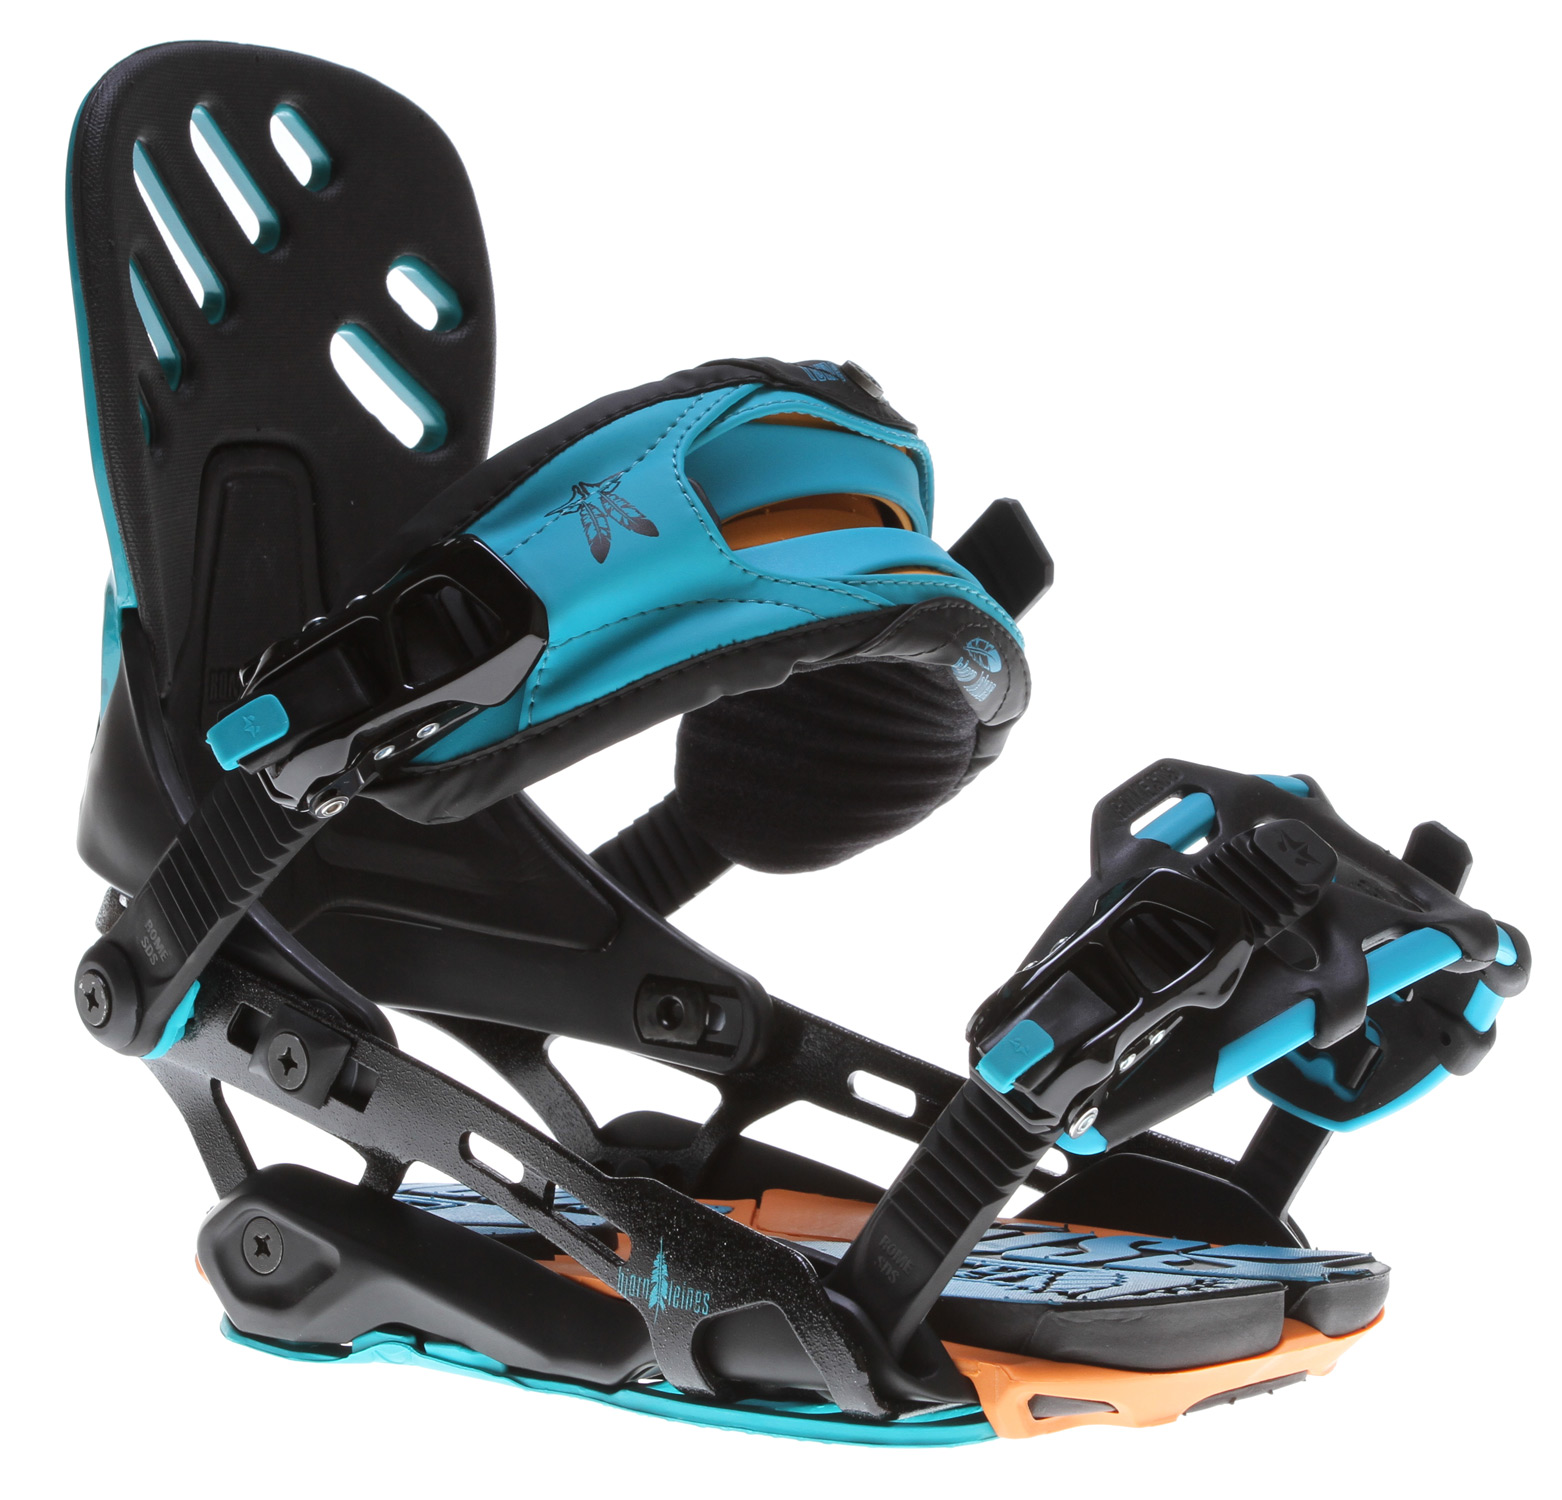 Snowboard Dial in your personal power & flex with complete customizationKey Features of the Rome Targa Snowboard Bindings: Tech-filled innovation Power driven from heel-to-toe Takes heavy hits with comfort under your feet Most customization in any binding made Yes, i cant system: canting gives you more comfort for wide stances and more power over your nose and tail  go with 2 degree or 3.5 degree of canting, or run 0 degree if you want to go traditional The choice is yours. Pf adjust ankle strap: ultimate customization with three different eva inserts: supportive, very supportive, and ultra supportive  Conformgrip toe strap: overmolded tpu grips the toe of your boot while conforming seamlessly to all models on the market. Contour ankle strap V-rod baseplate Underwrap.3 heel hoop Targa highback Subbase v-pad Rome customization foundation Rome quicktech foundation - $289.99